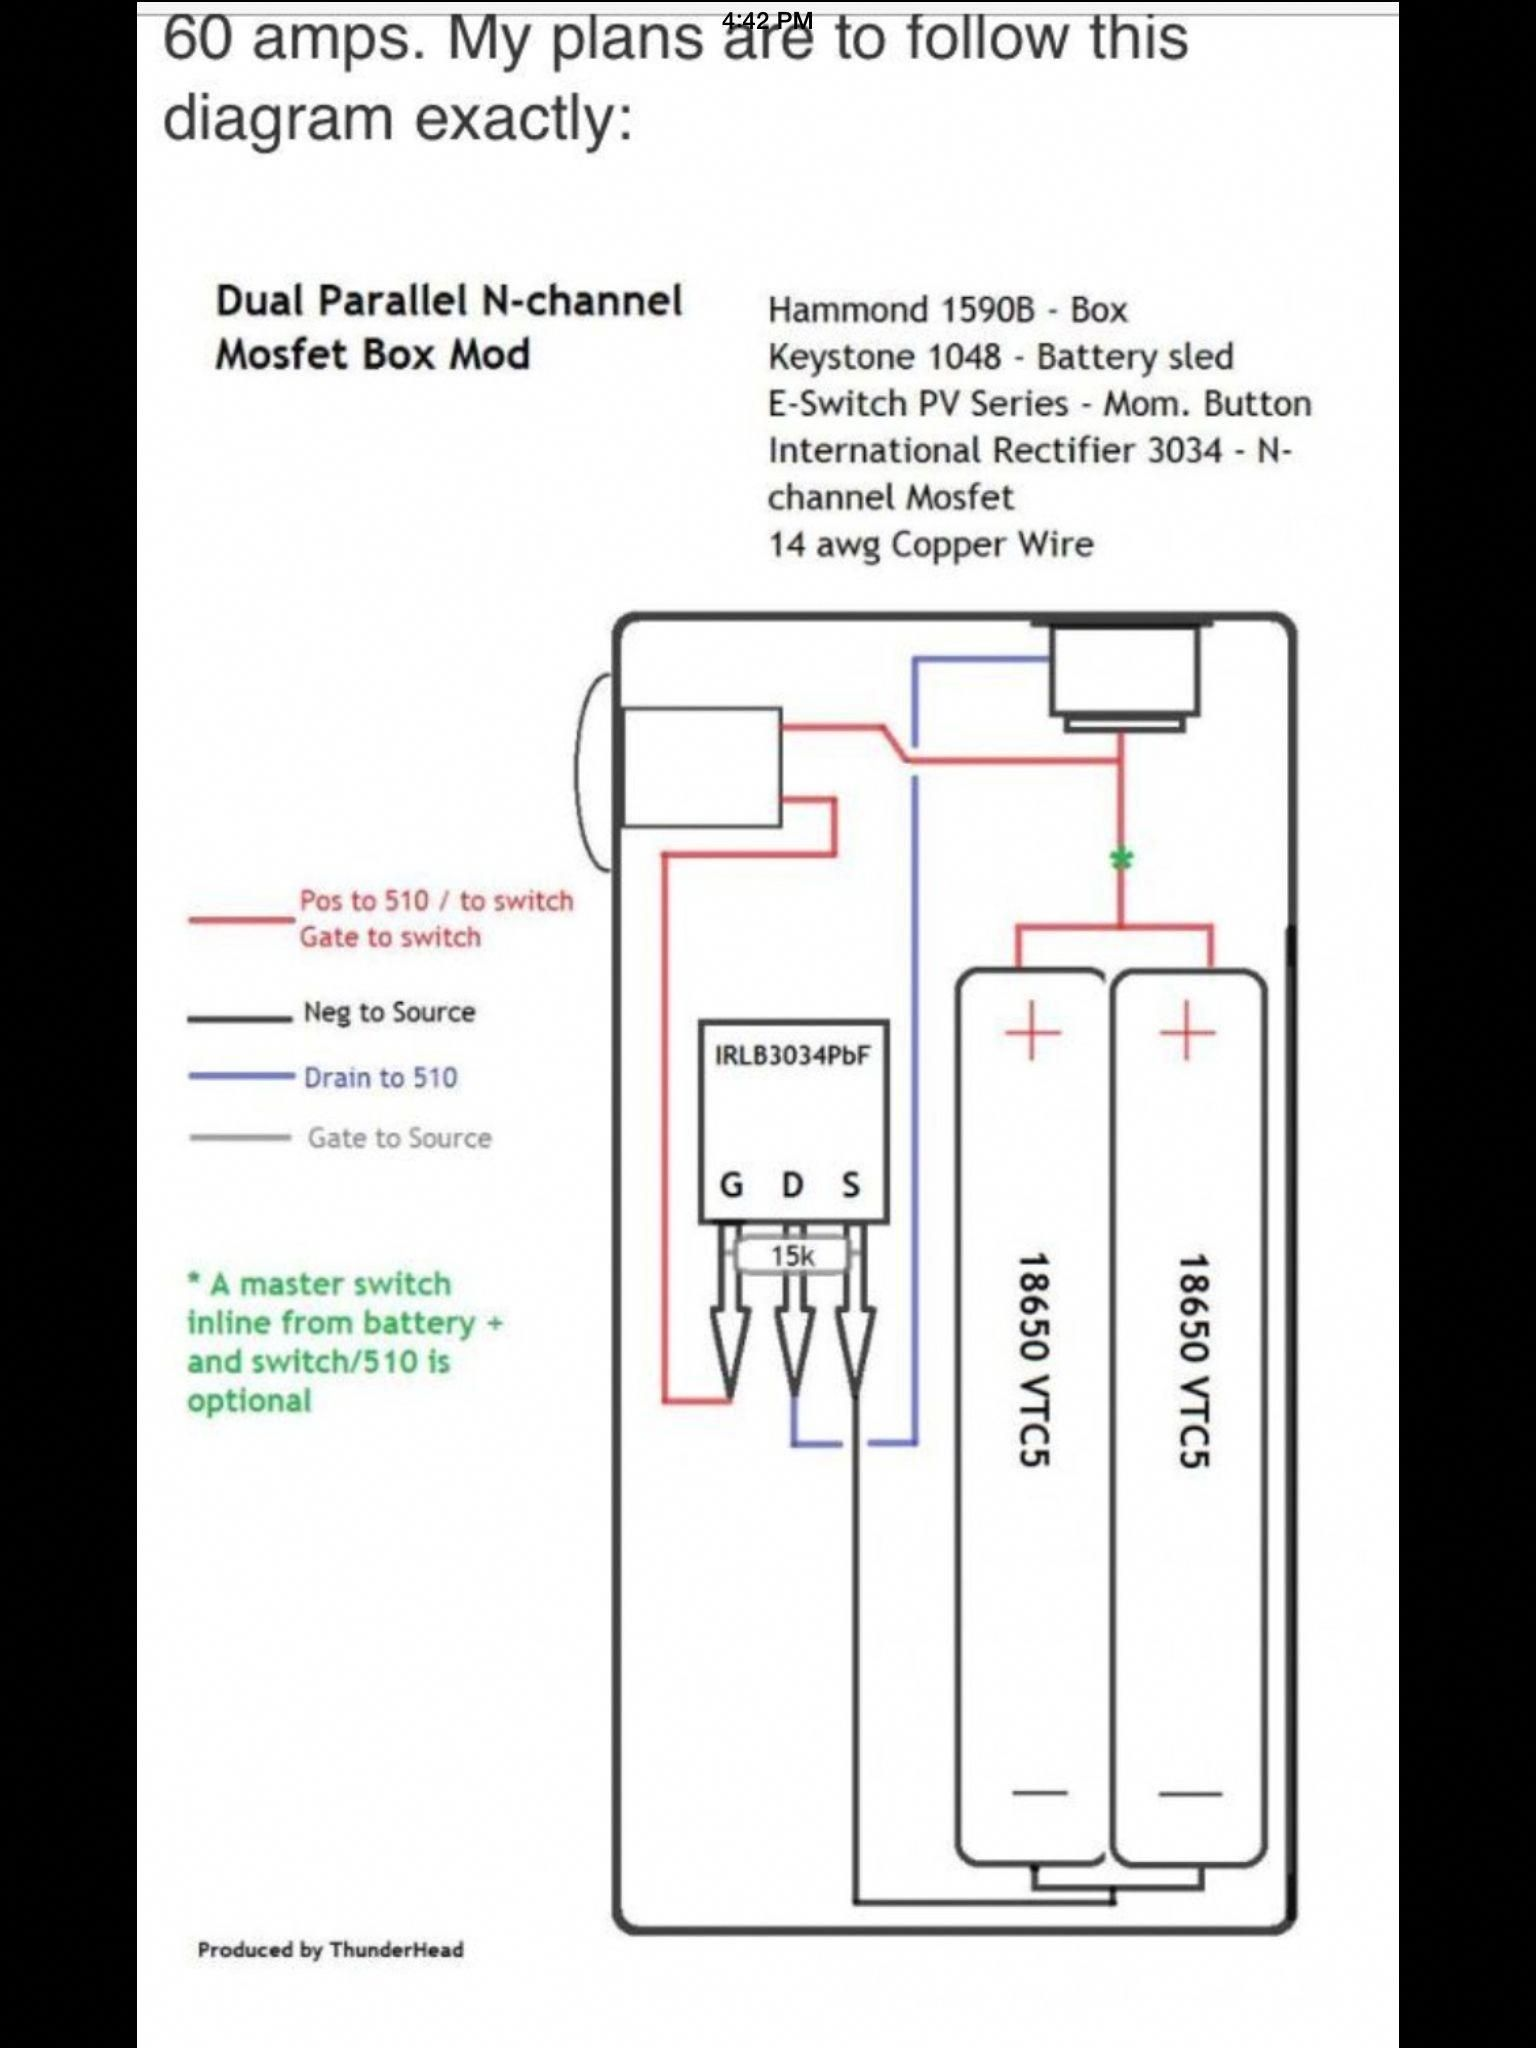 medium resolution of mod box diagram wiring diagram load dual parallel mosfet box mod diagram customecigmods e cigs in